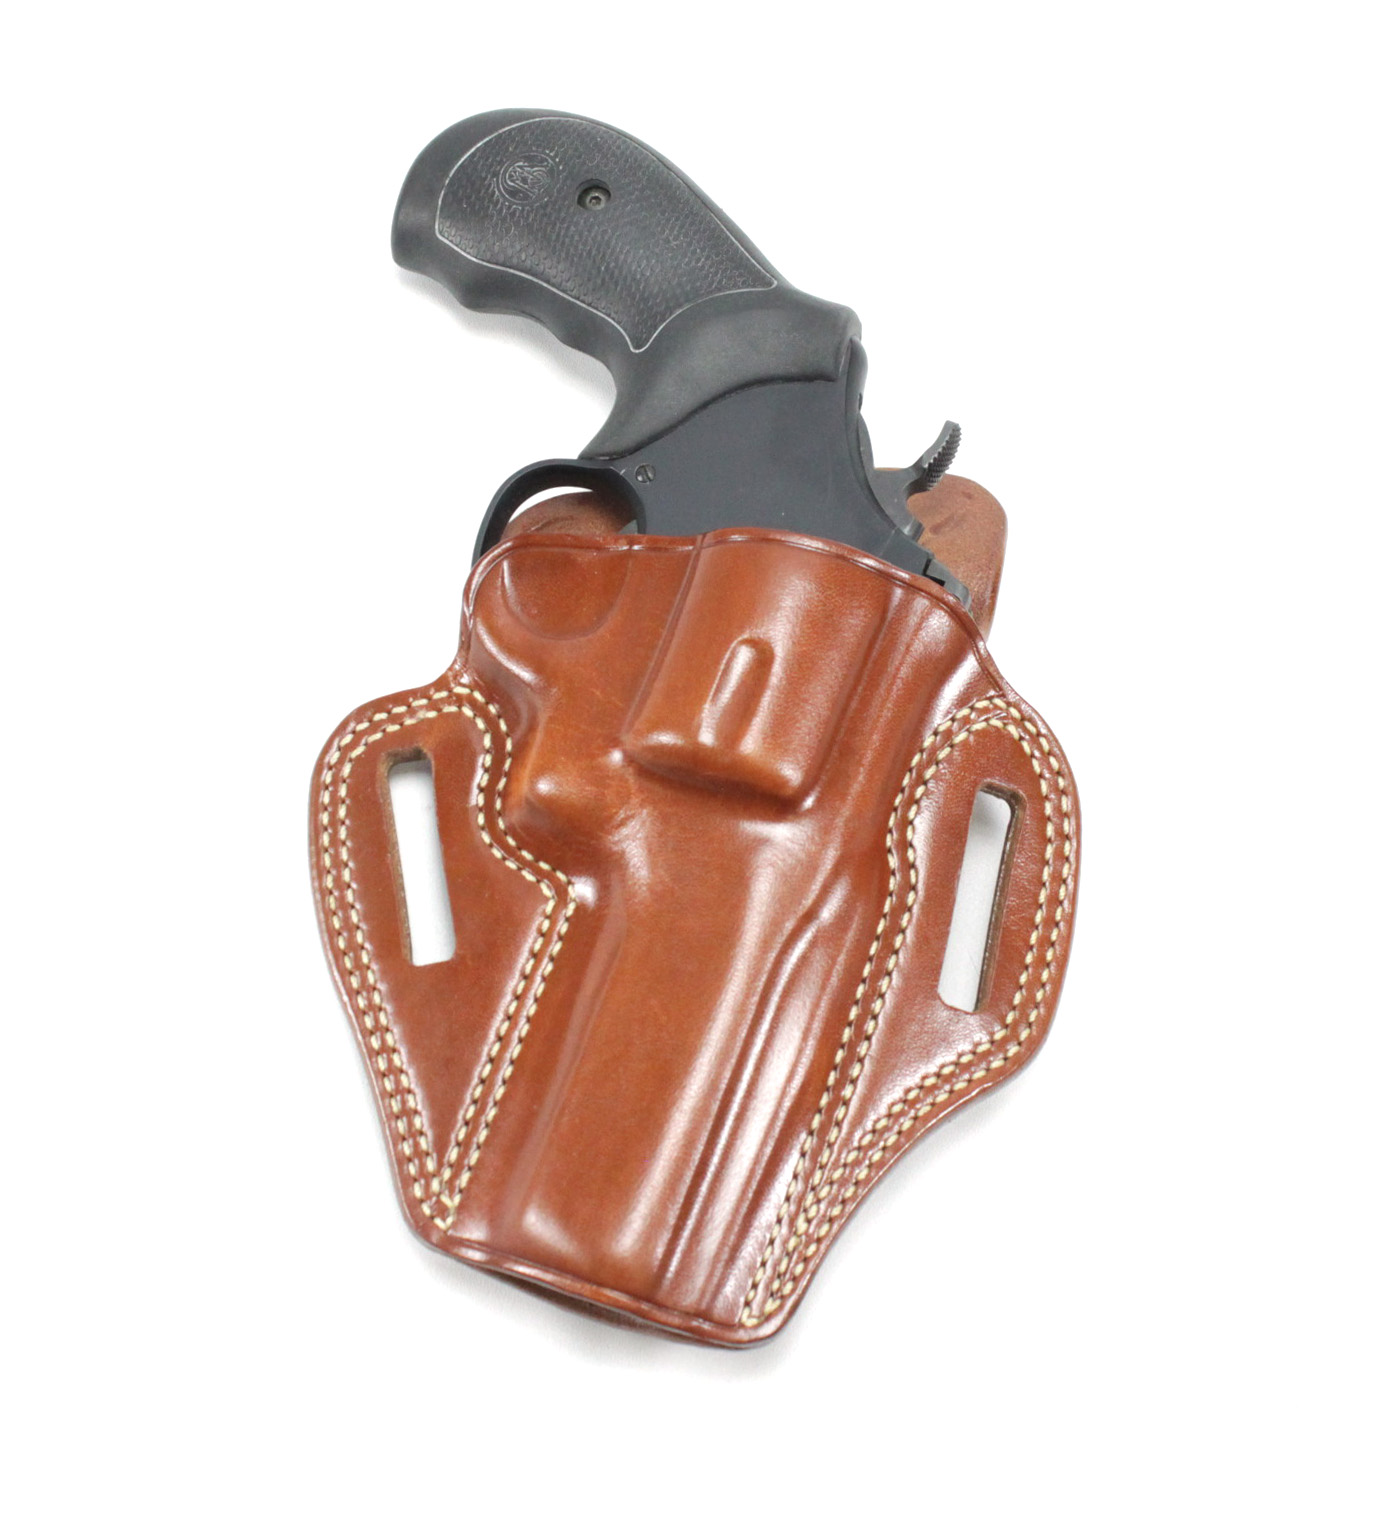 Galco CM126 Combat Master Belt Holster Smith & Wesson N Frame 4 Inch Models  625, 627, 327, 325